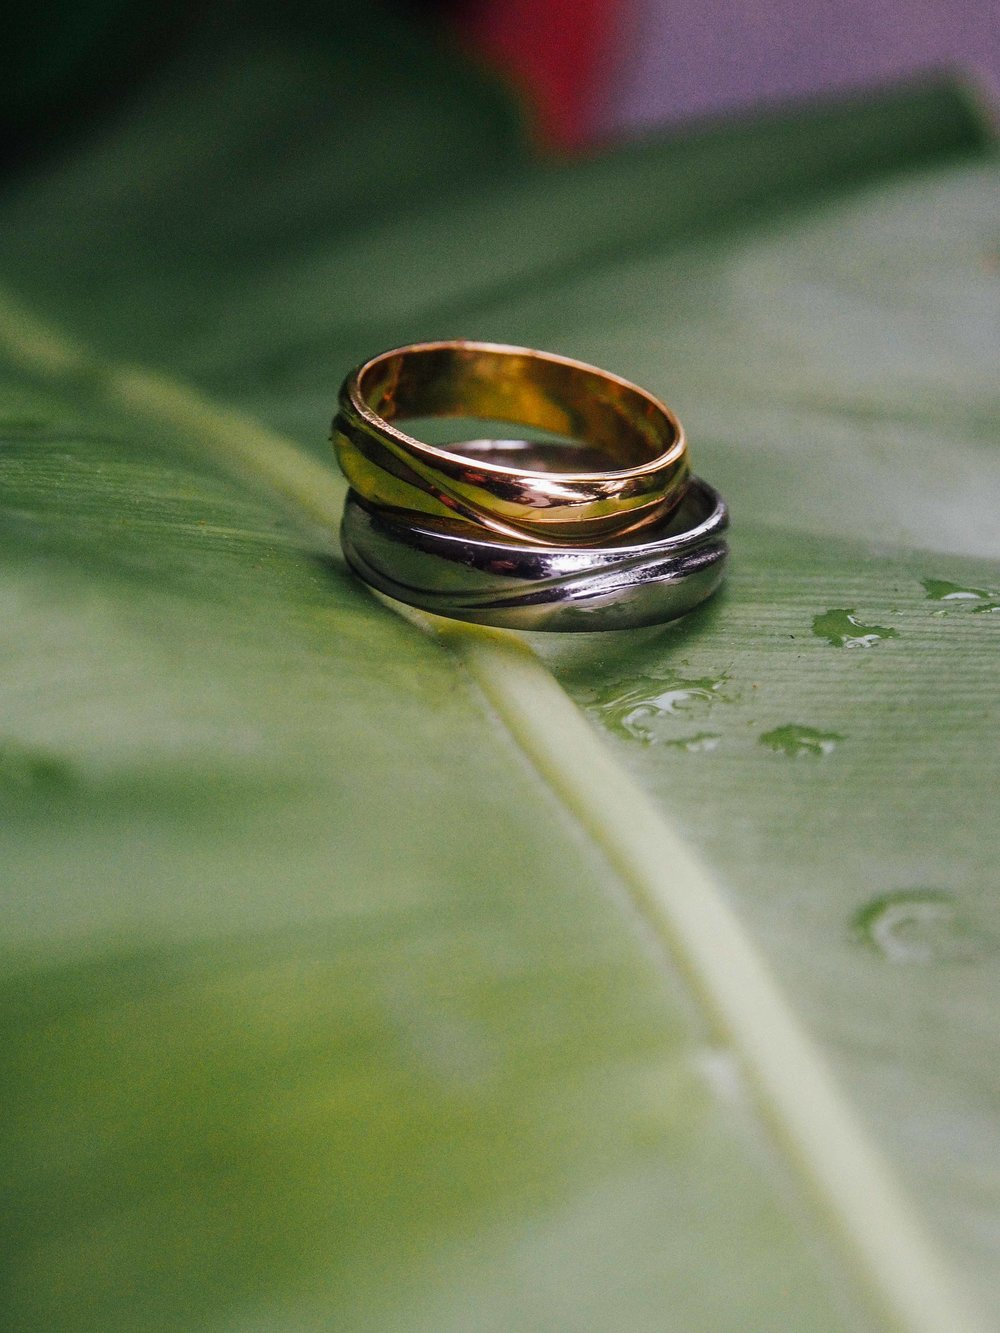 15 - Wedding bands.JPG